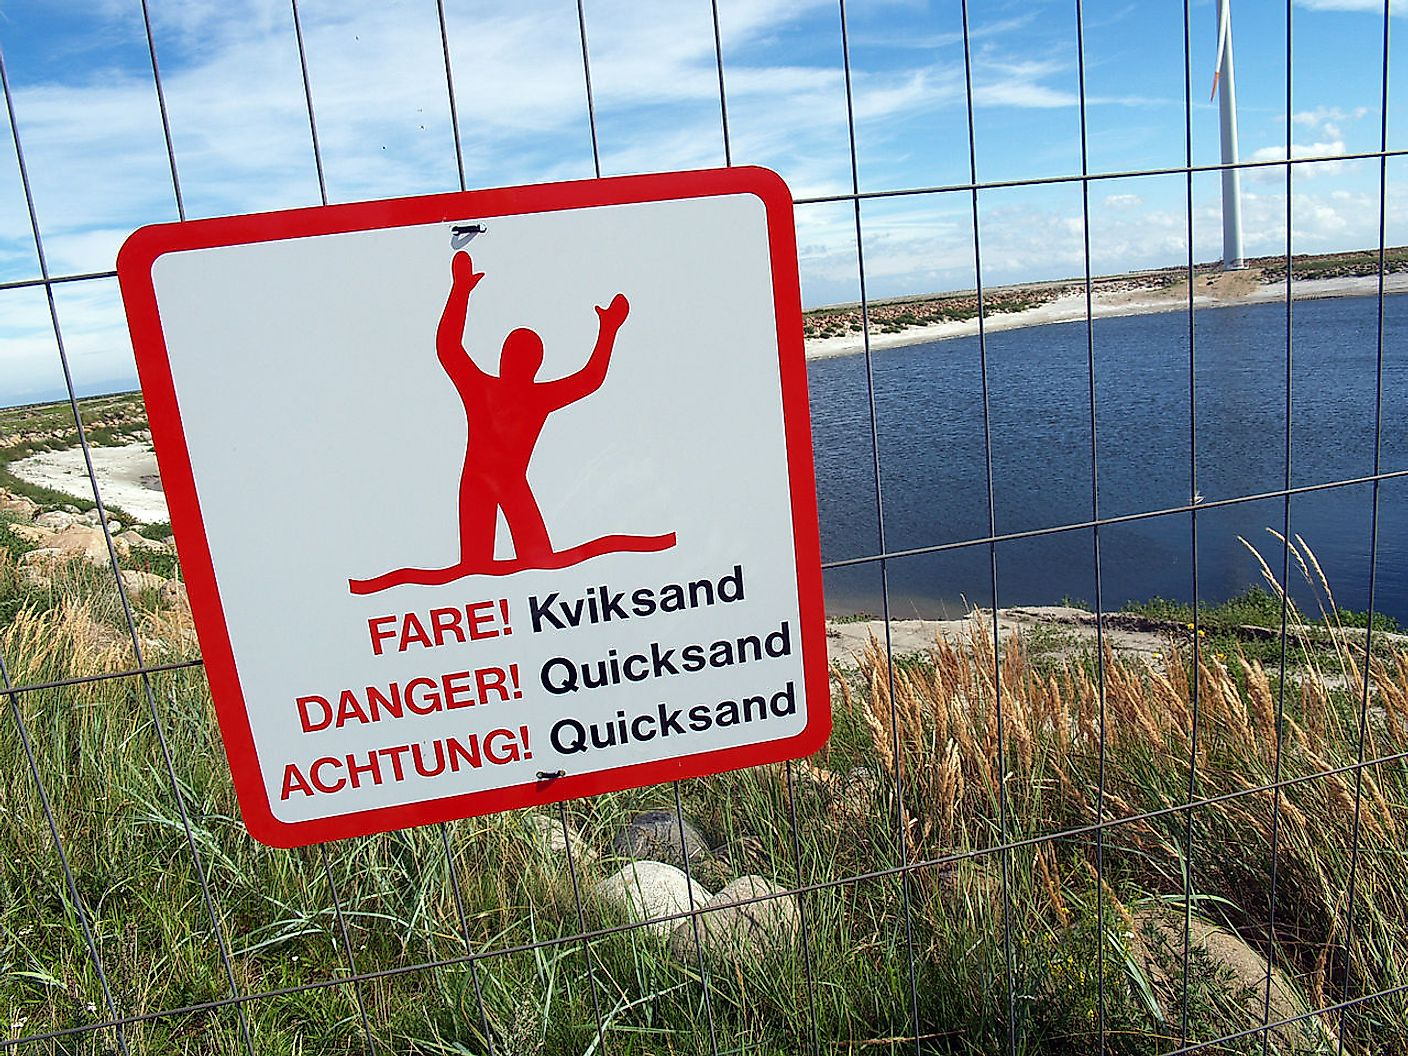 Warning sign for quicksand in Frederikshavn in Denmark. Image credit: Matthew Bargo/Wikimedia.org